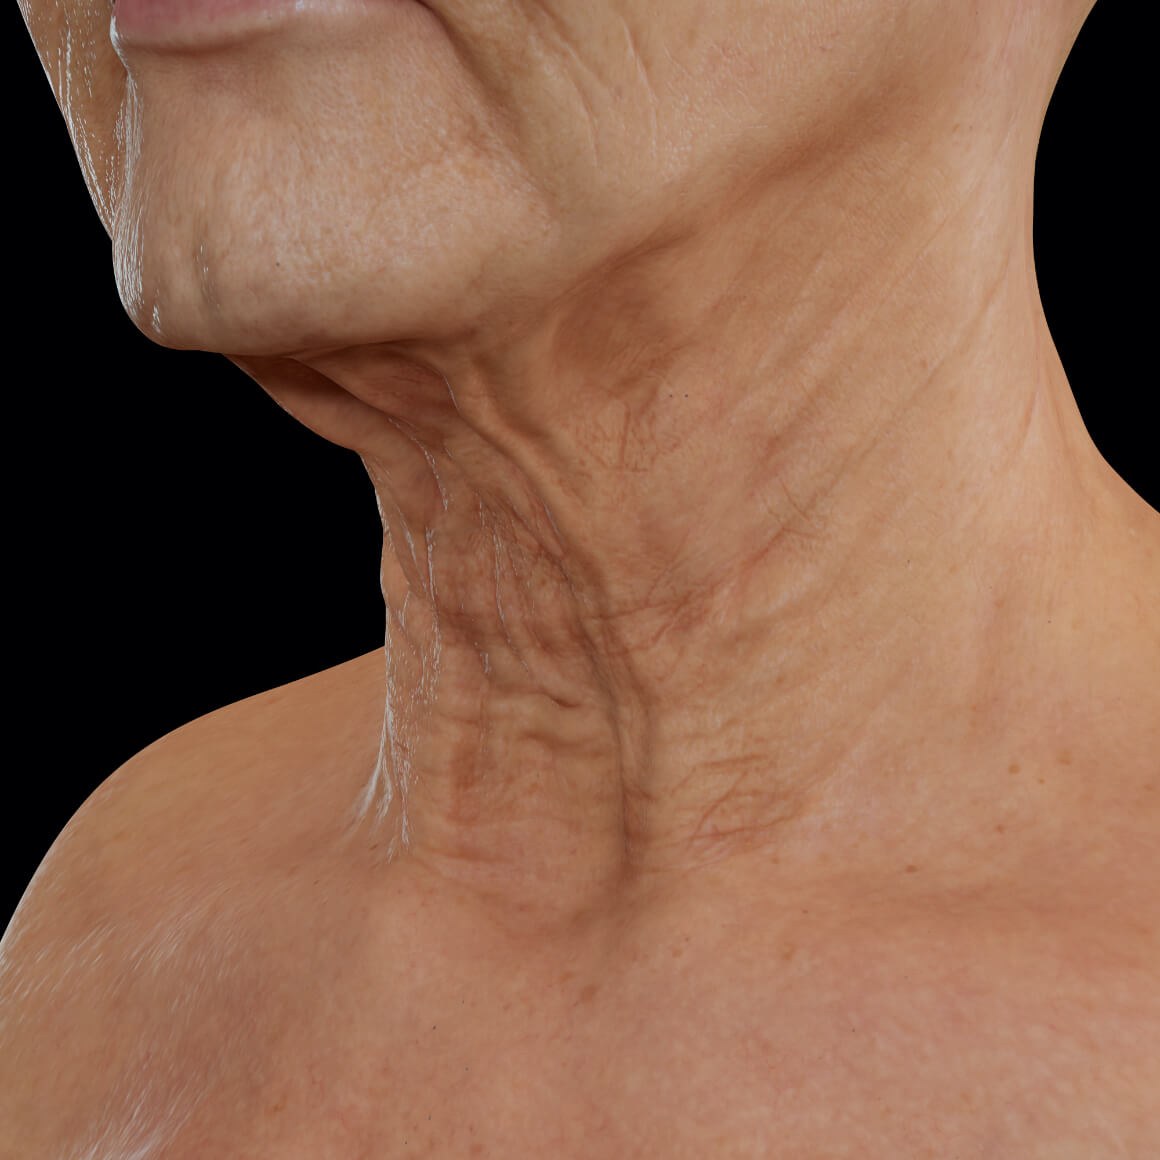 Female patient from Clinique Chloé positioned at an angle with laxity in the neck area